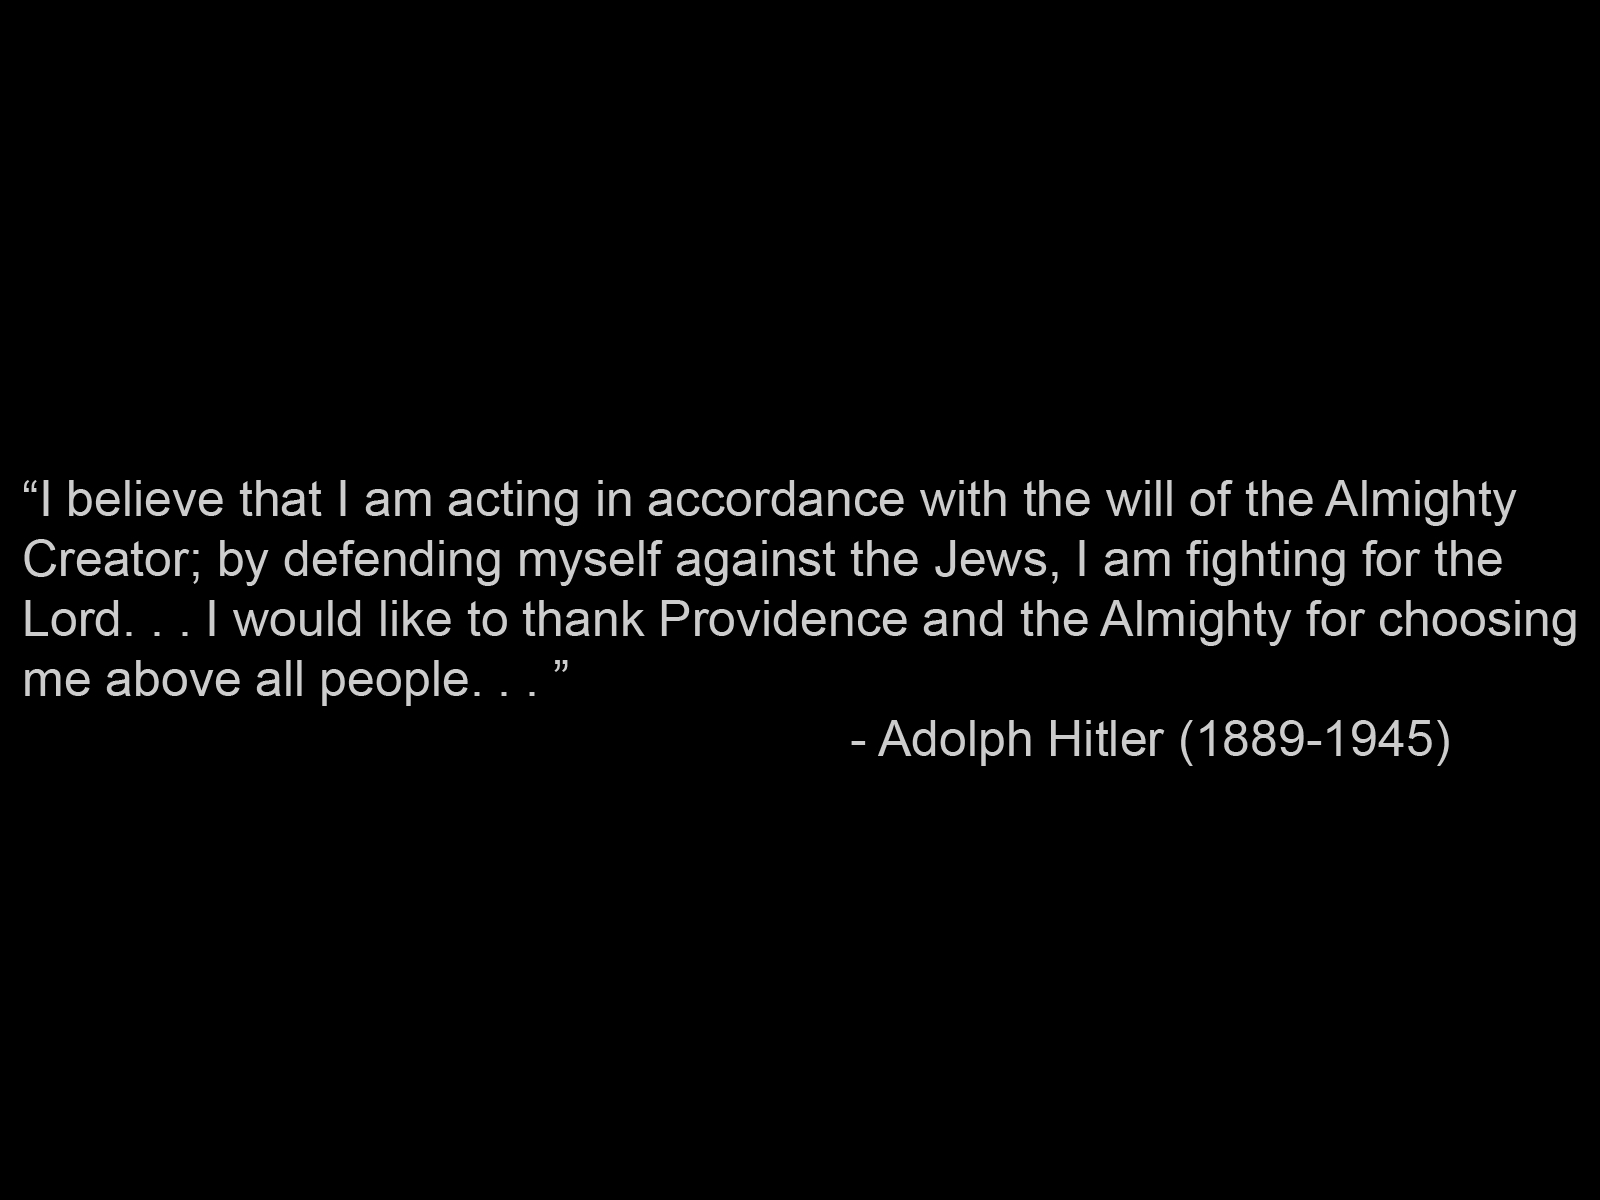 Quotes religion Adolf hitler HD Wallpaper